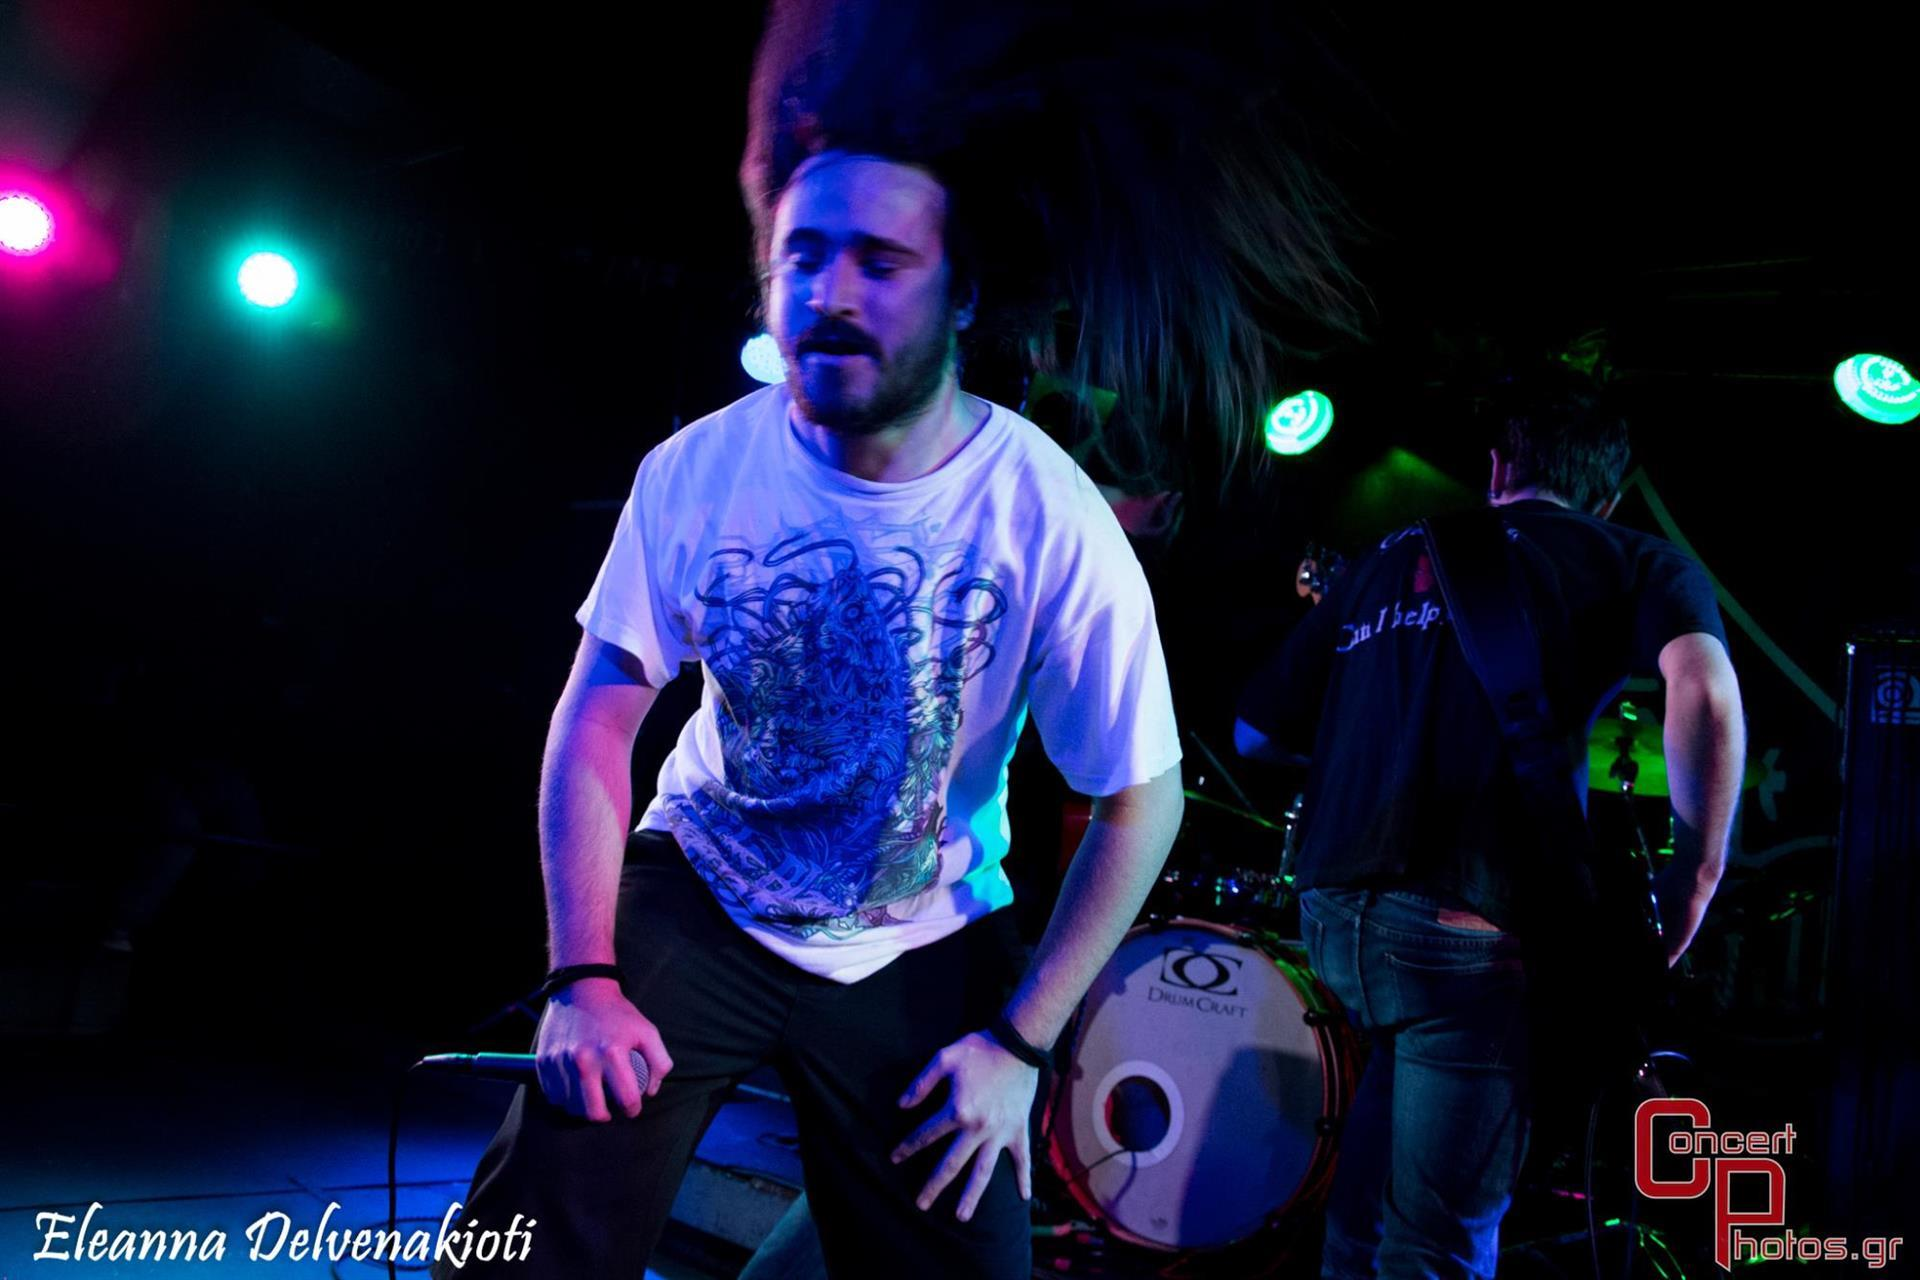 Battle Of The Bands Athens - Leg 4-test photographer:  - Battle Of The Bands-20150208-231334